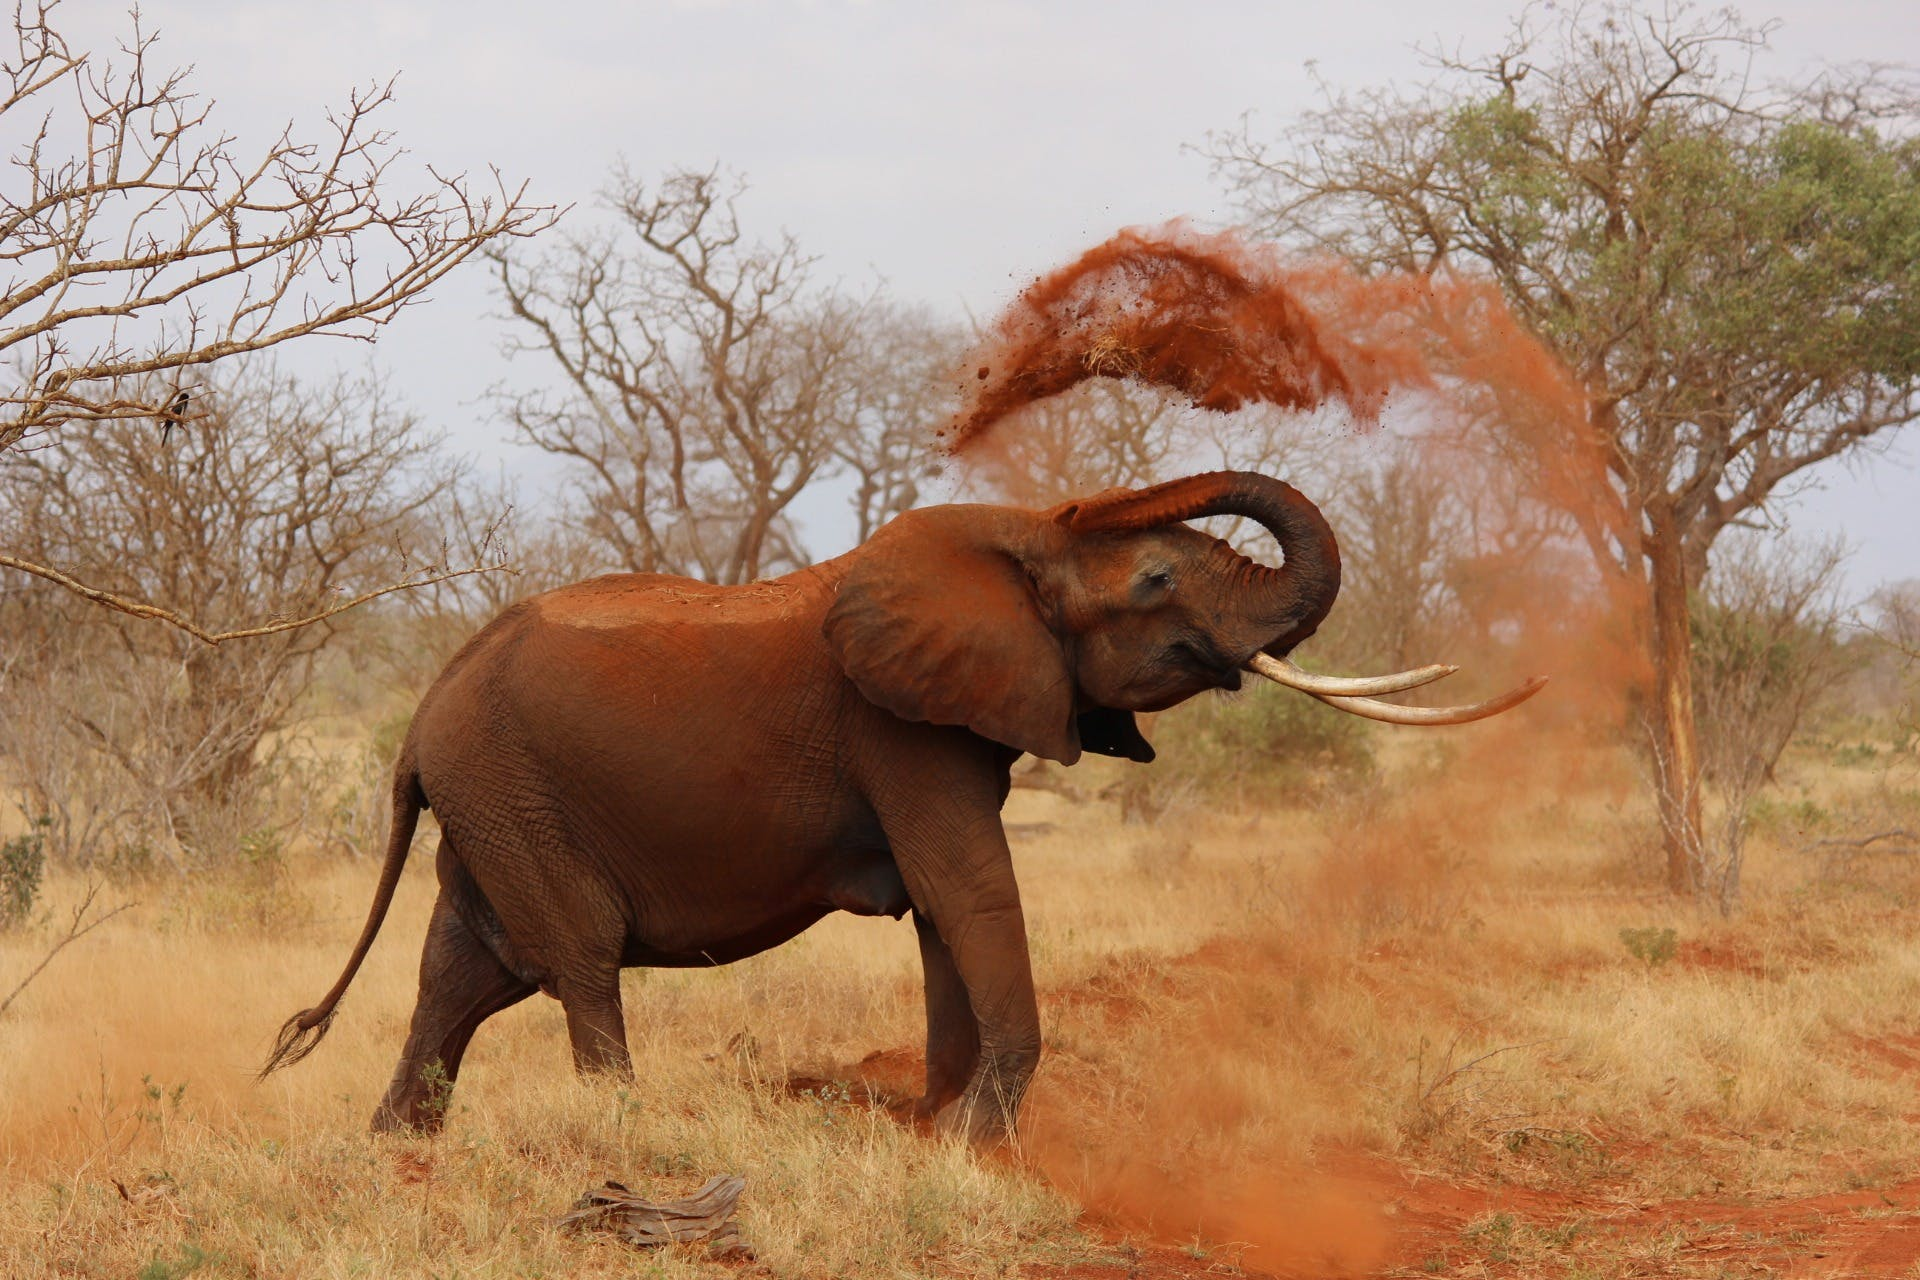 Grey Elephant Throwing Sand With Trunk Near Green Trees